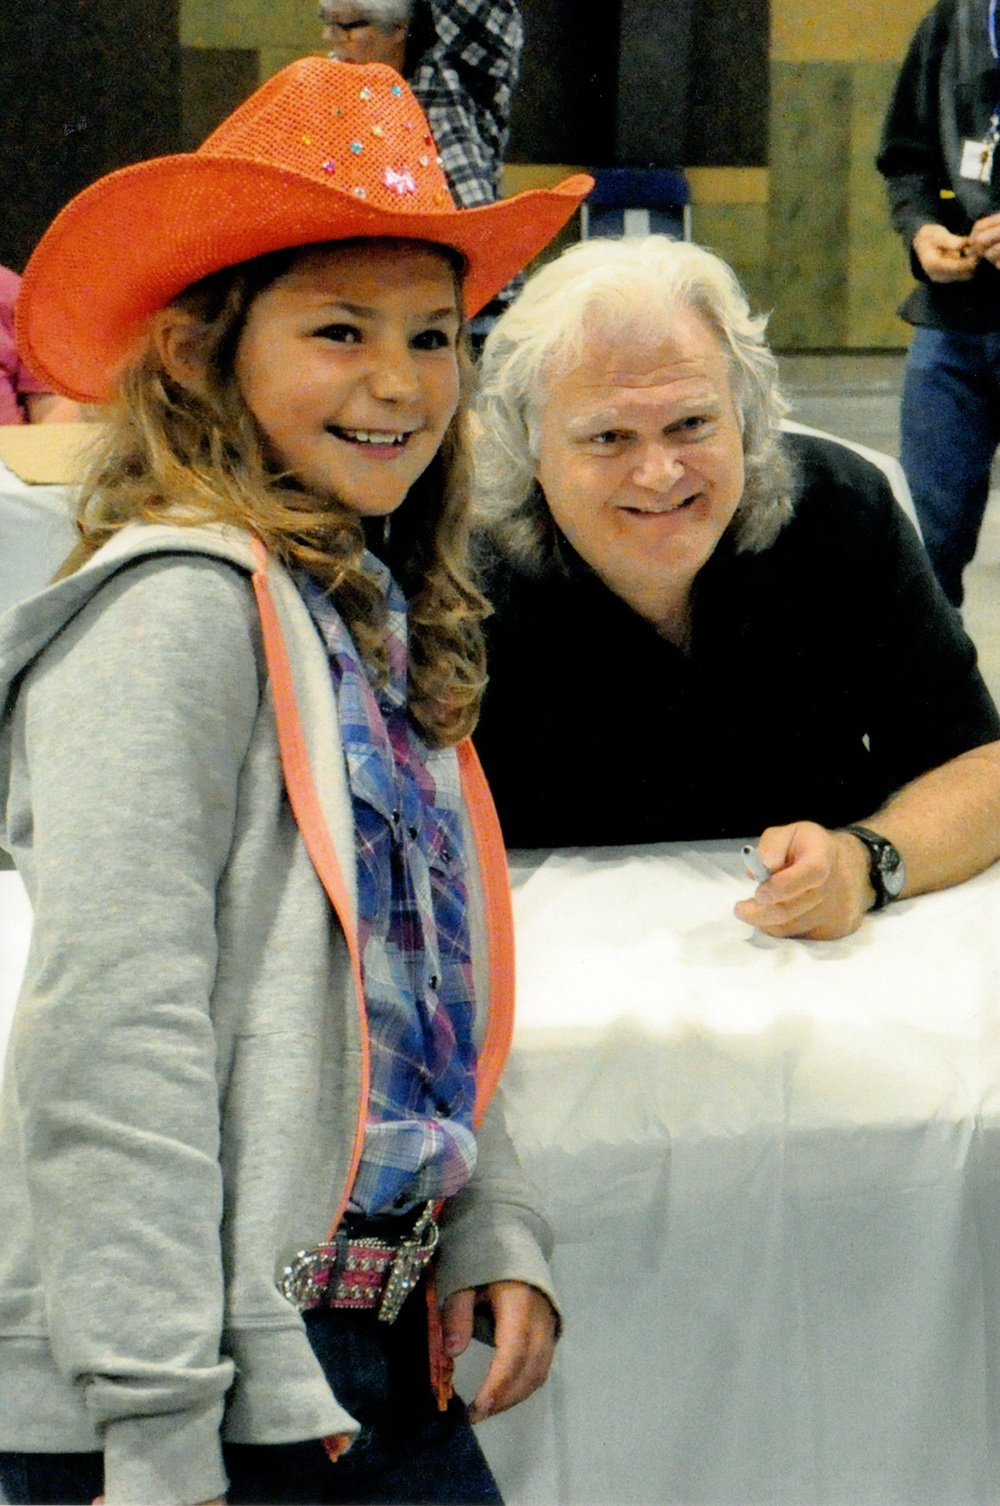 Ricky Skaggs with a young fan